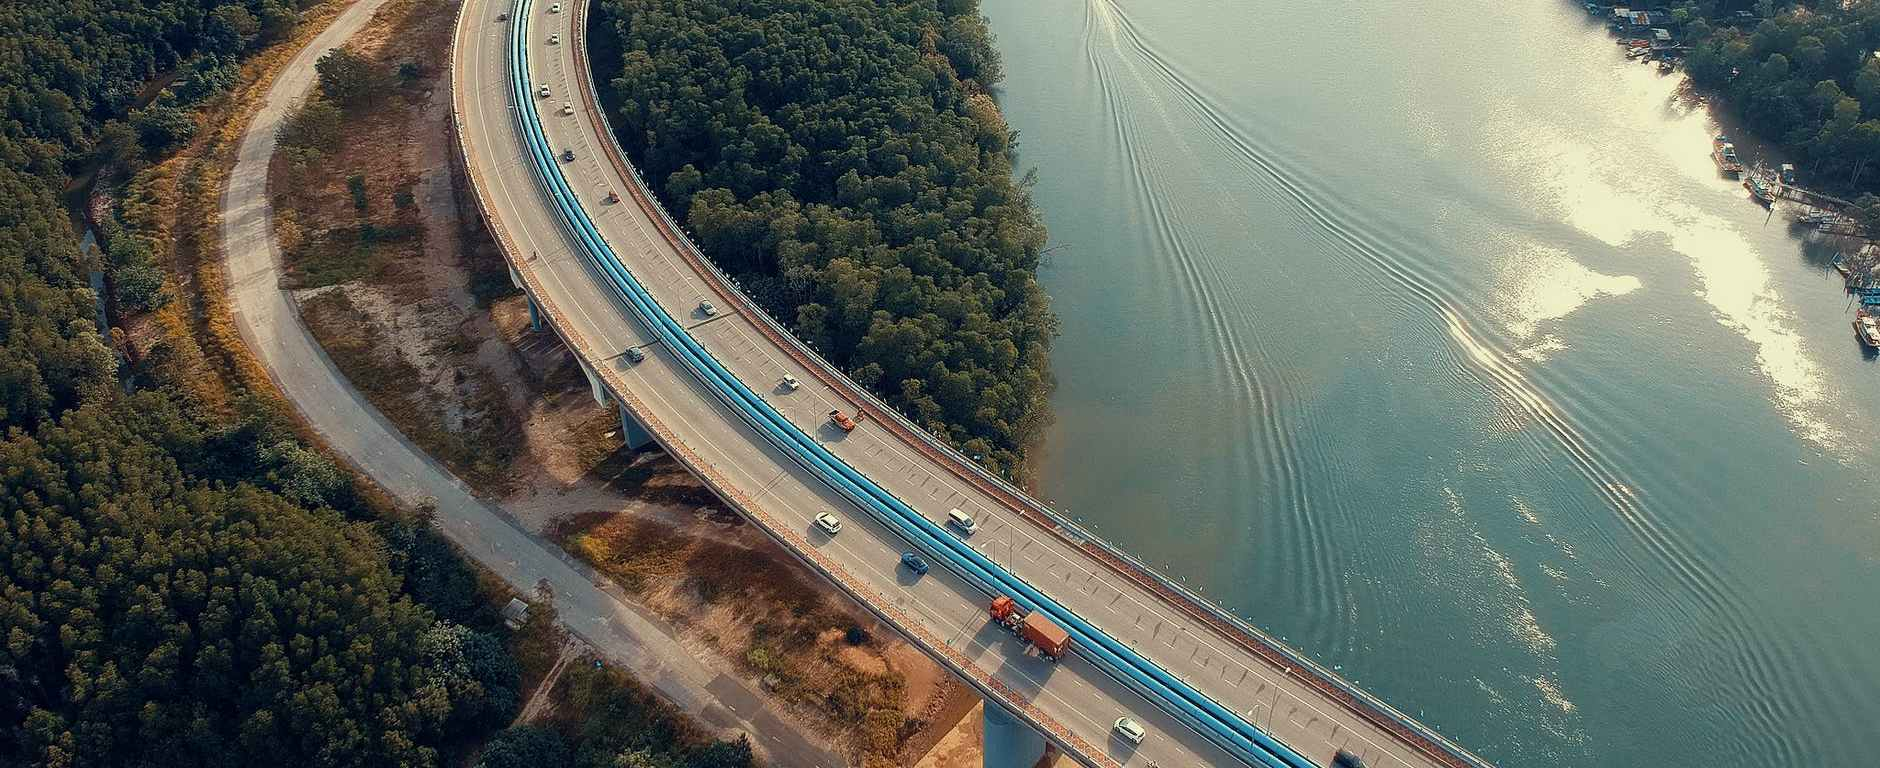 aerial view photography of bridge near river